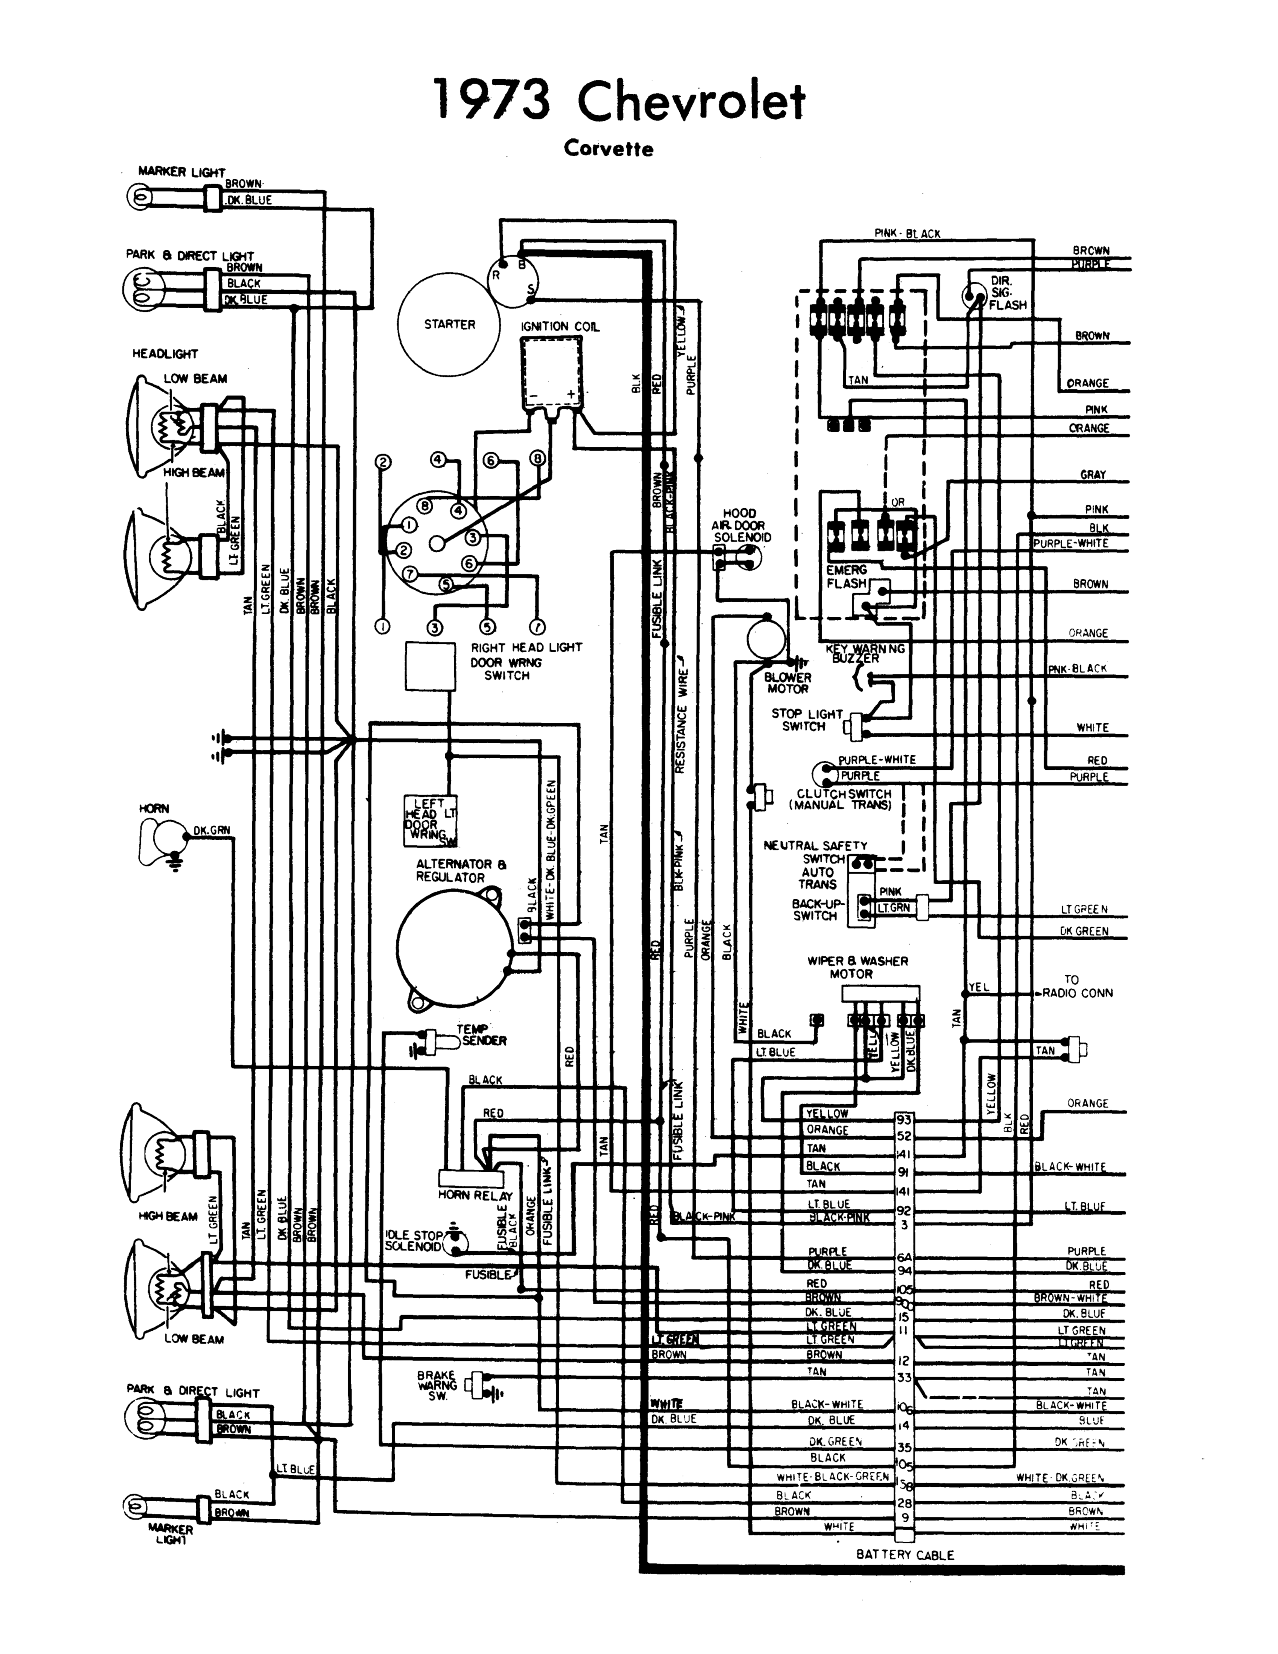 wiring diagram 1973 corvette | Chevy Corvette 1973 Wiring Diagrams